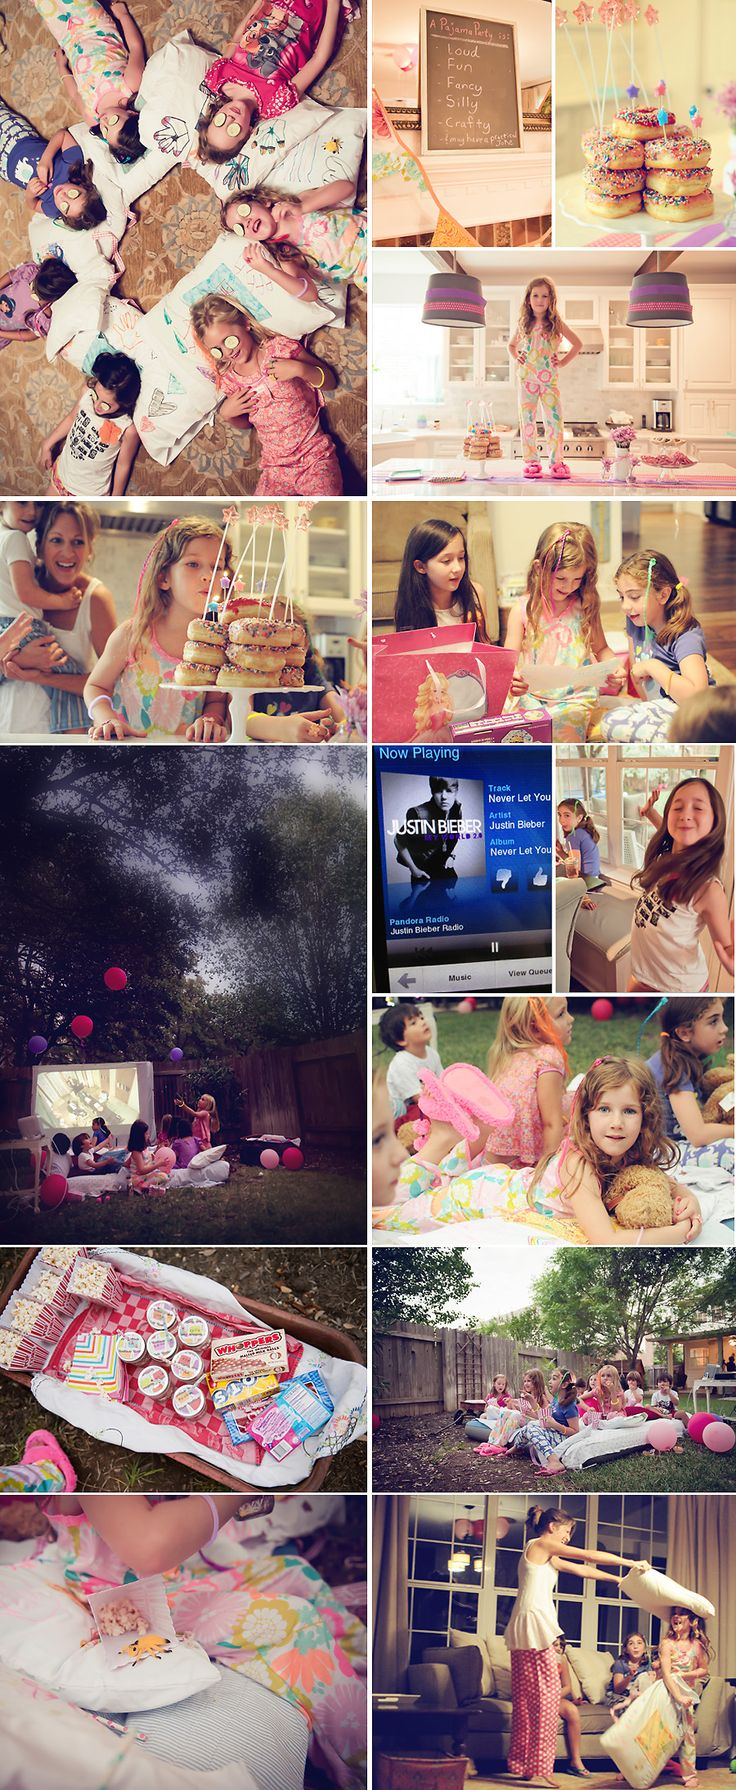 Pajama Night Inspiration: Lovely photos of a Pajama Party by Heather Walker #pjnight: Pajamas Party'S, Girli Parties, Girl Sleepover, Cute Pajamas, Future Sleepover, Parties Ideas, Movie Night, Pajamas Parties, 6Th Birthday Parties